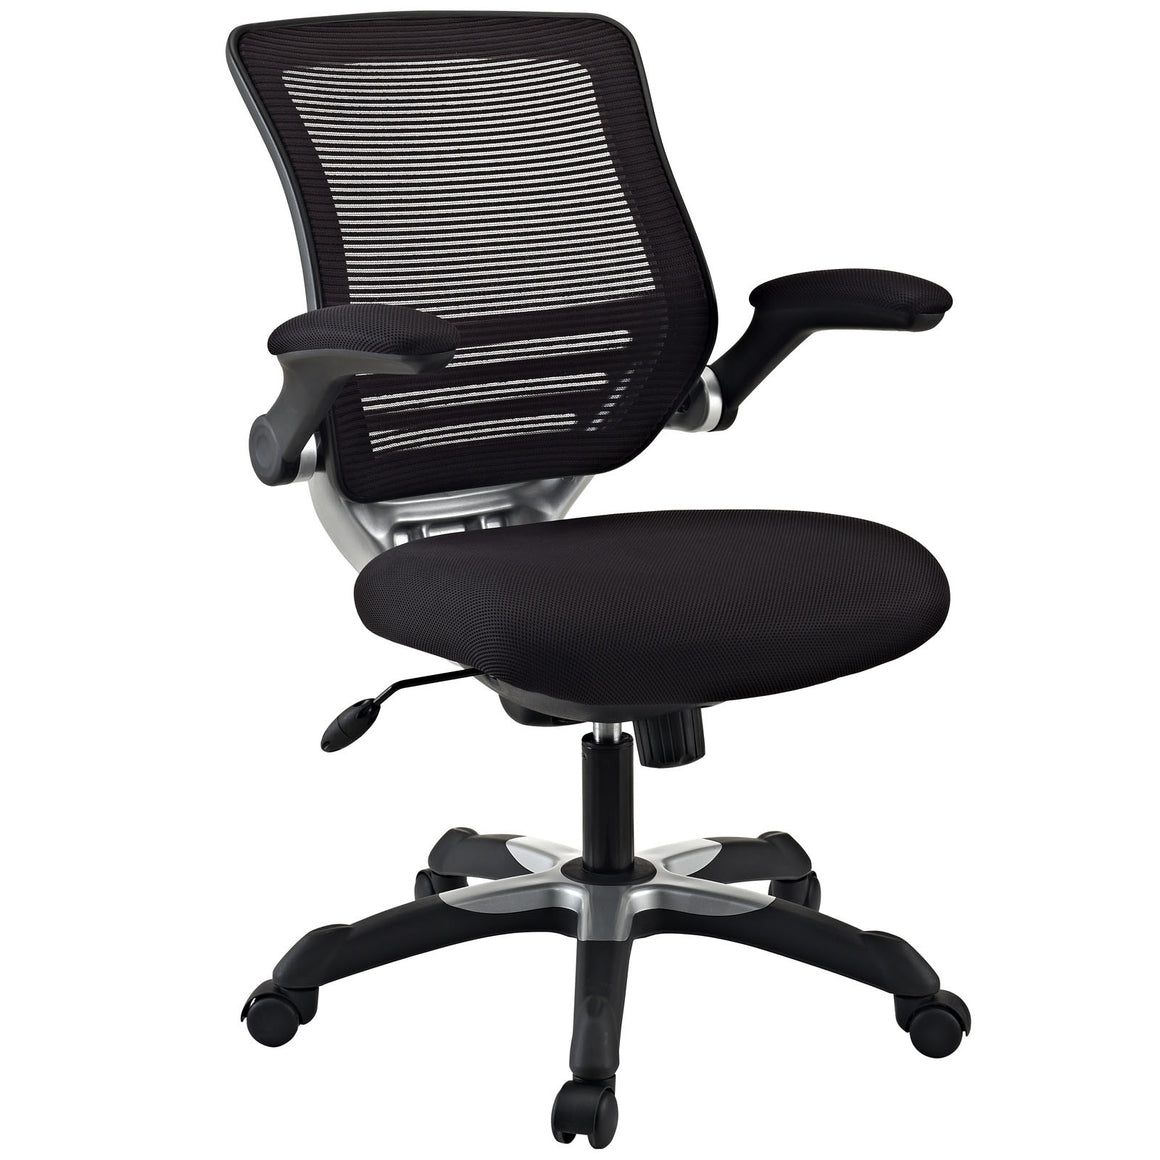 Edge Mesh Office Chair - taylor ray decor